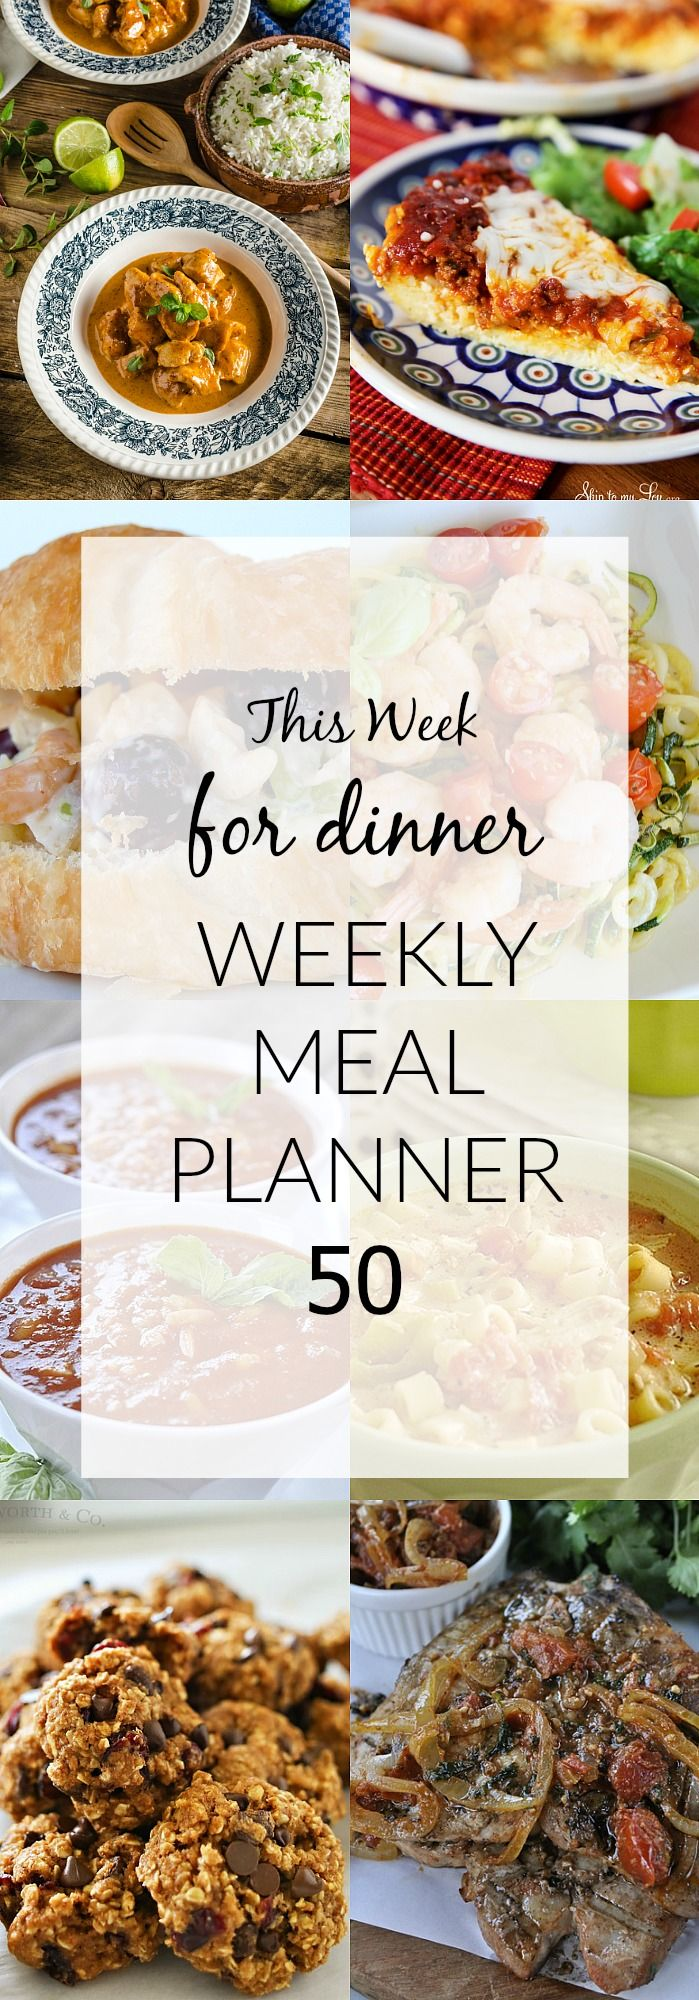 Weekly Meal Plan to make your life easier!